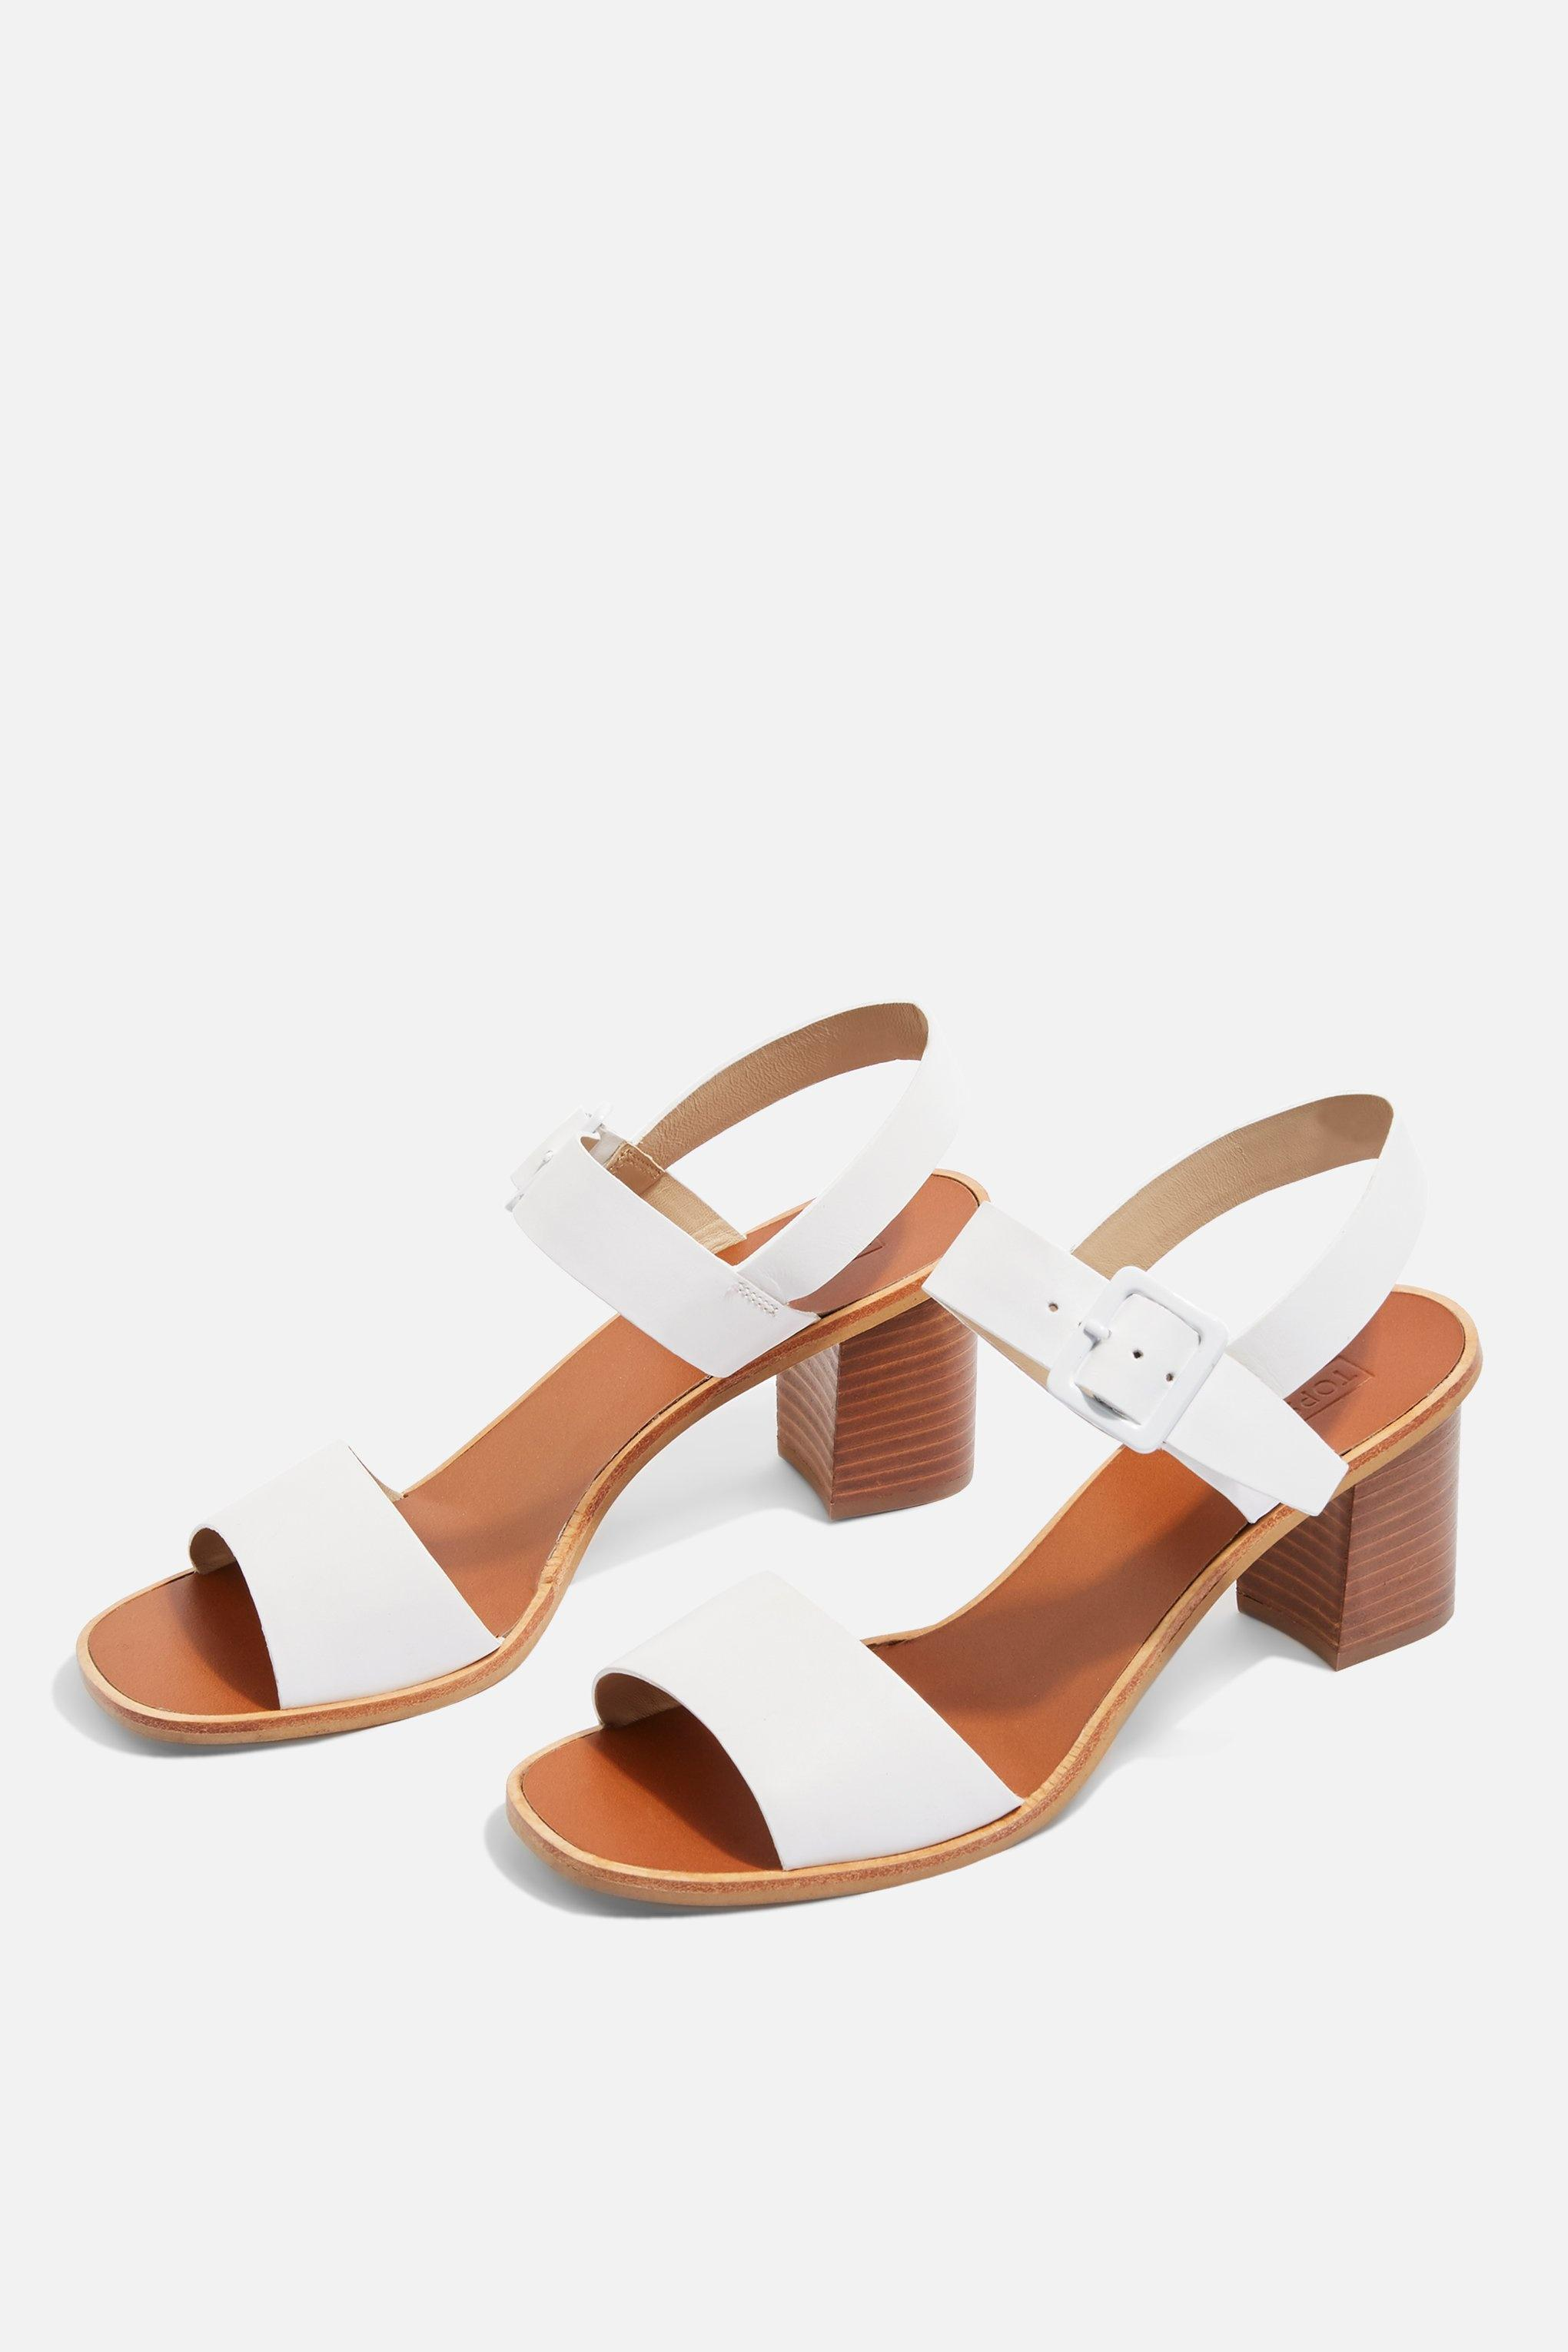 29f07adc2bbb Lyst - TOPSHOP Nancy Two Part Sandals in White - Save 53%